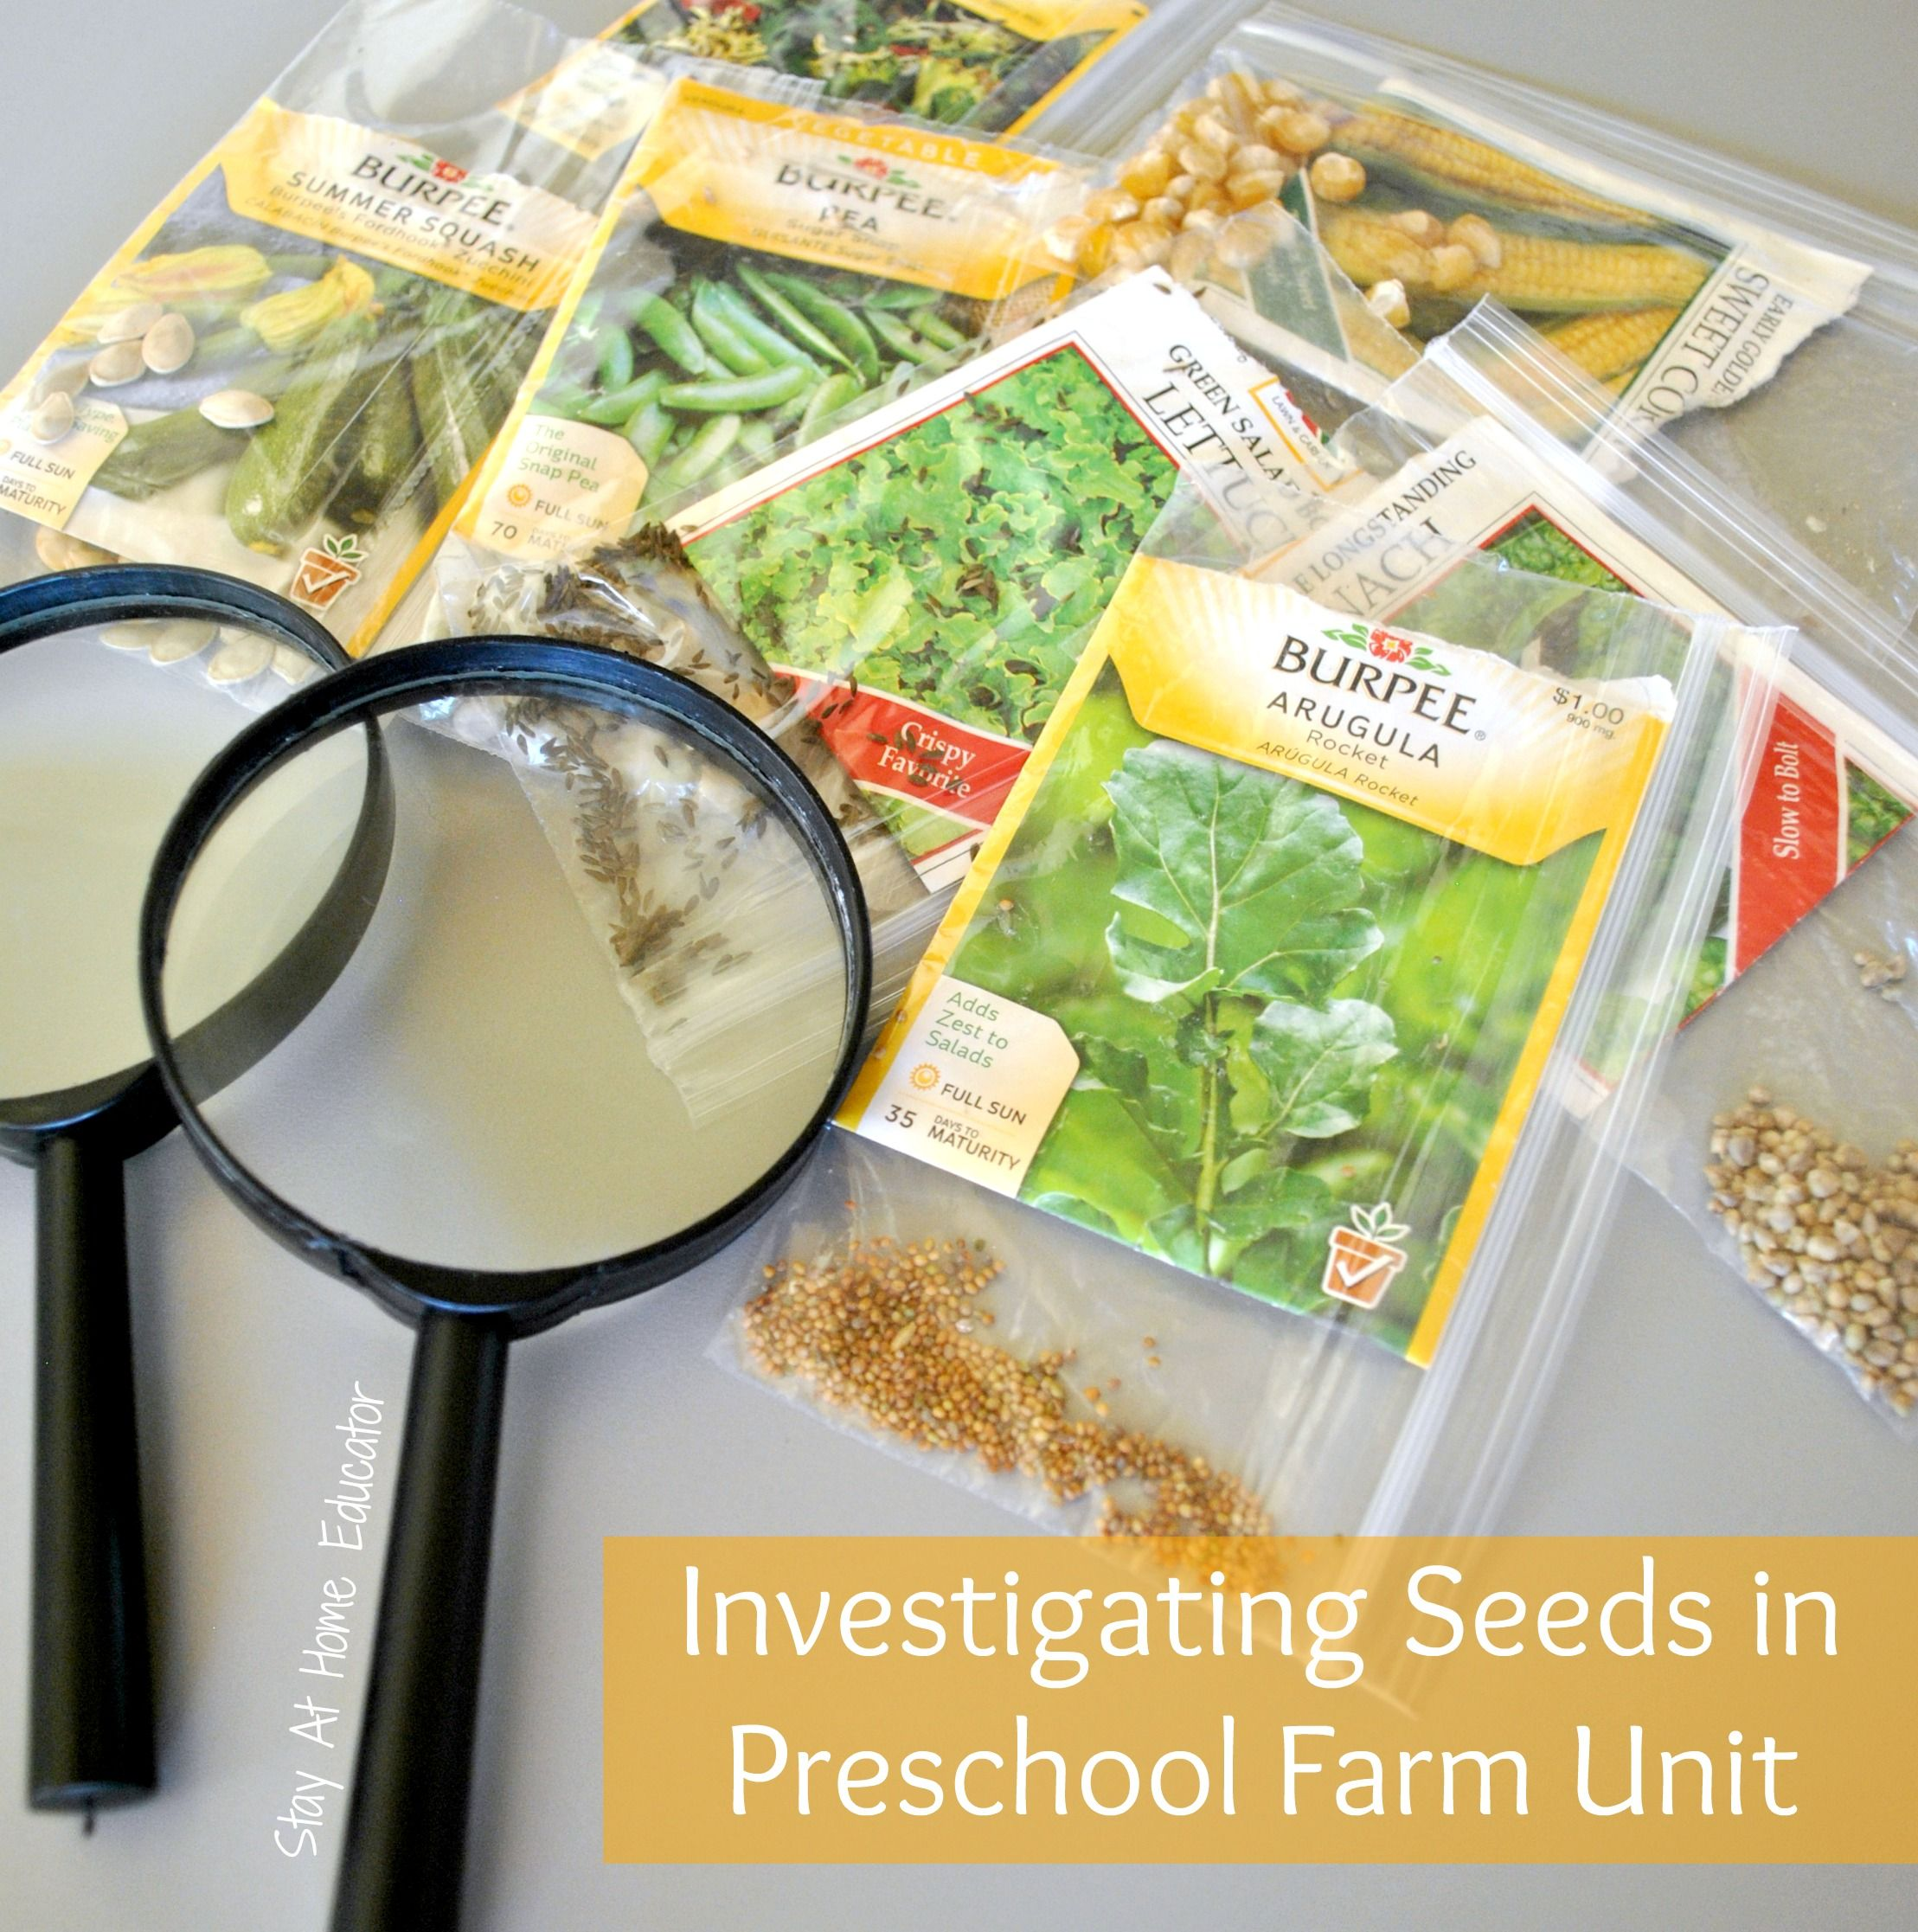 7 Ways To Explore Seeds In A Preschool Farm Theme Science